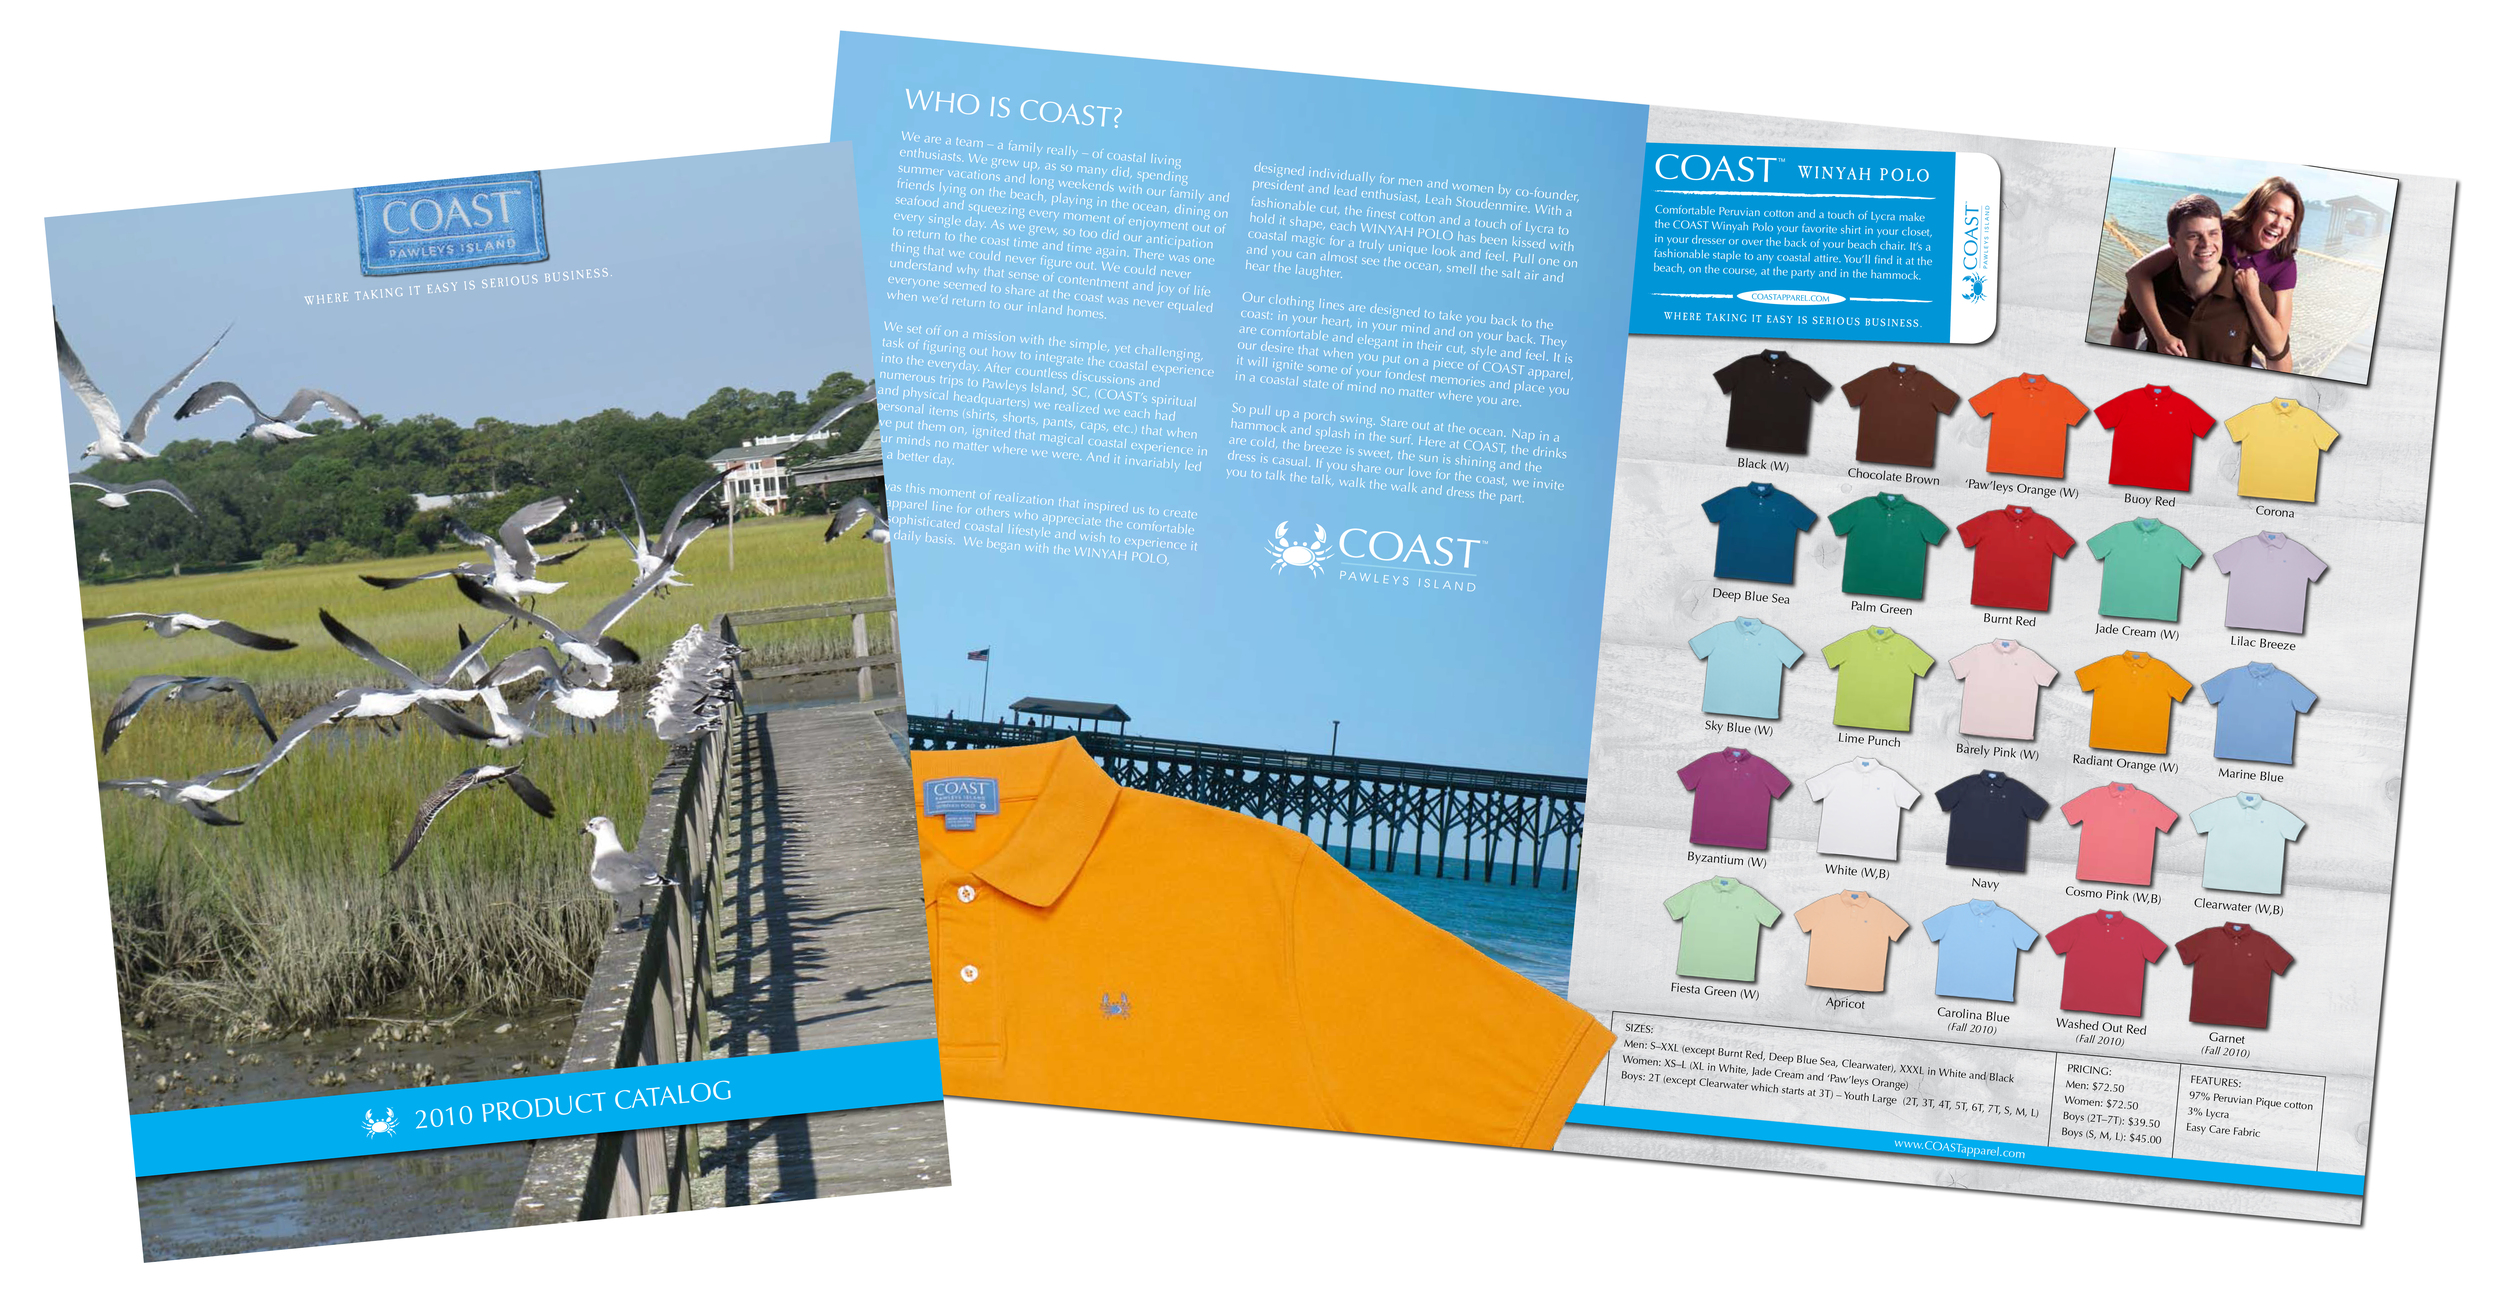 COAST Apparel 2010 Product Catalog